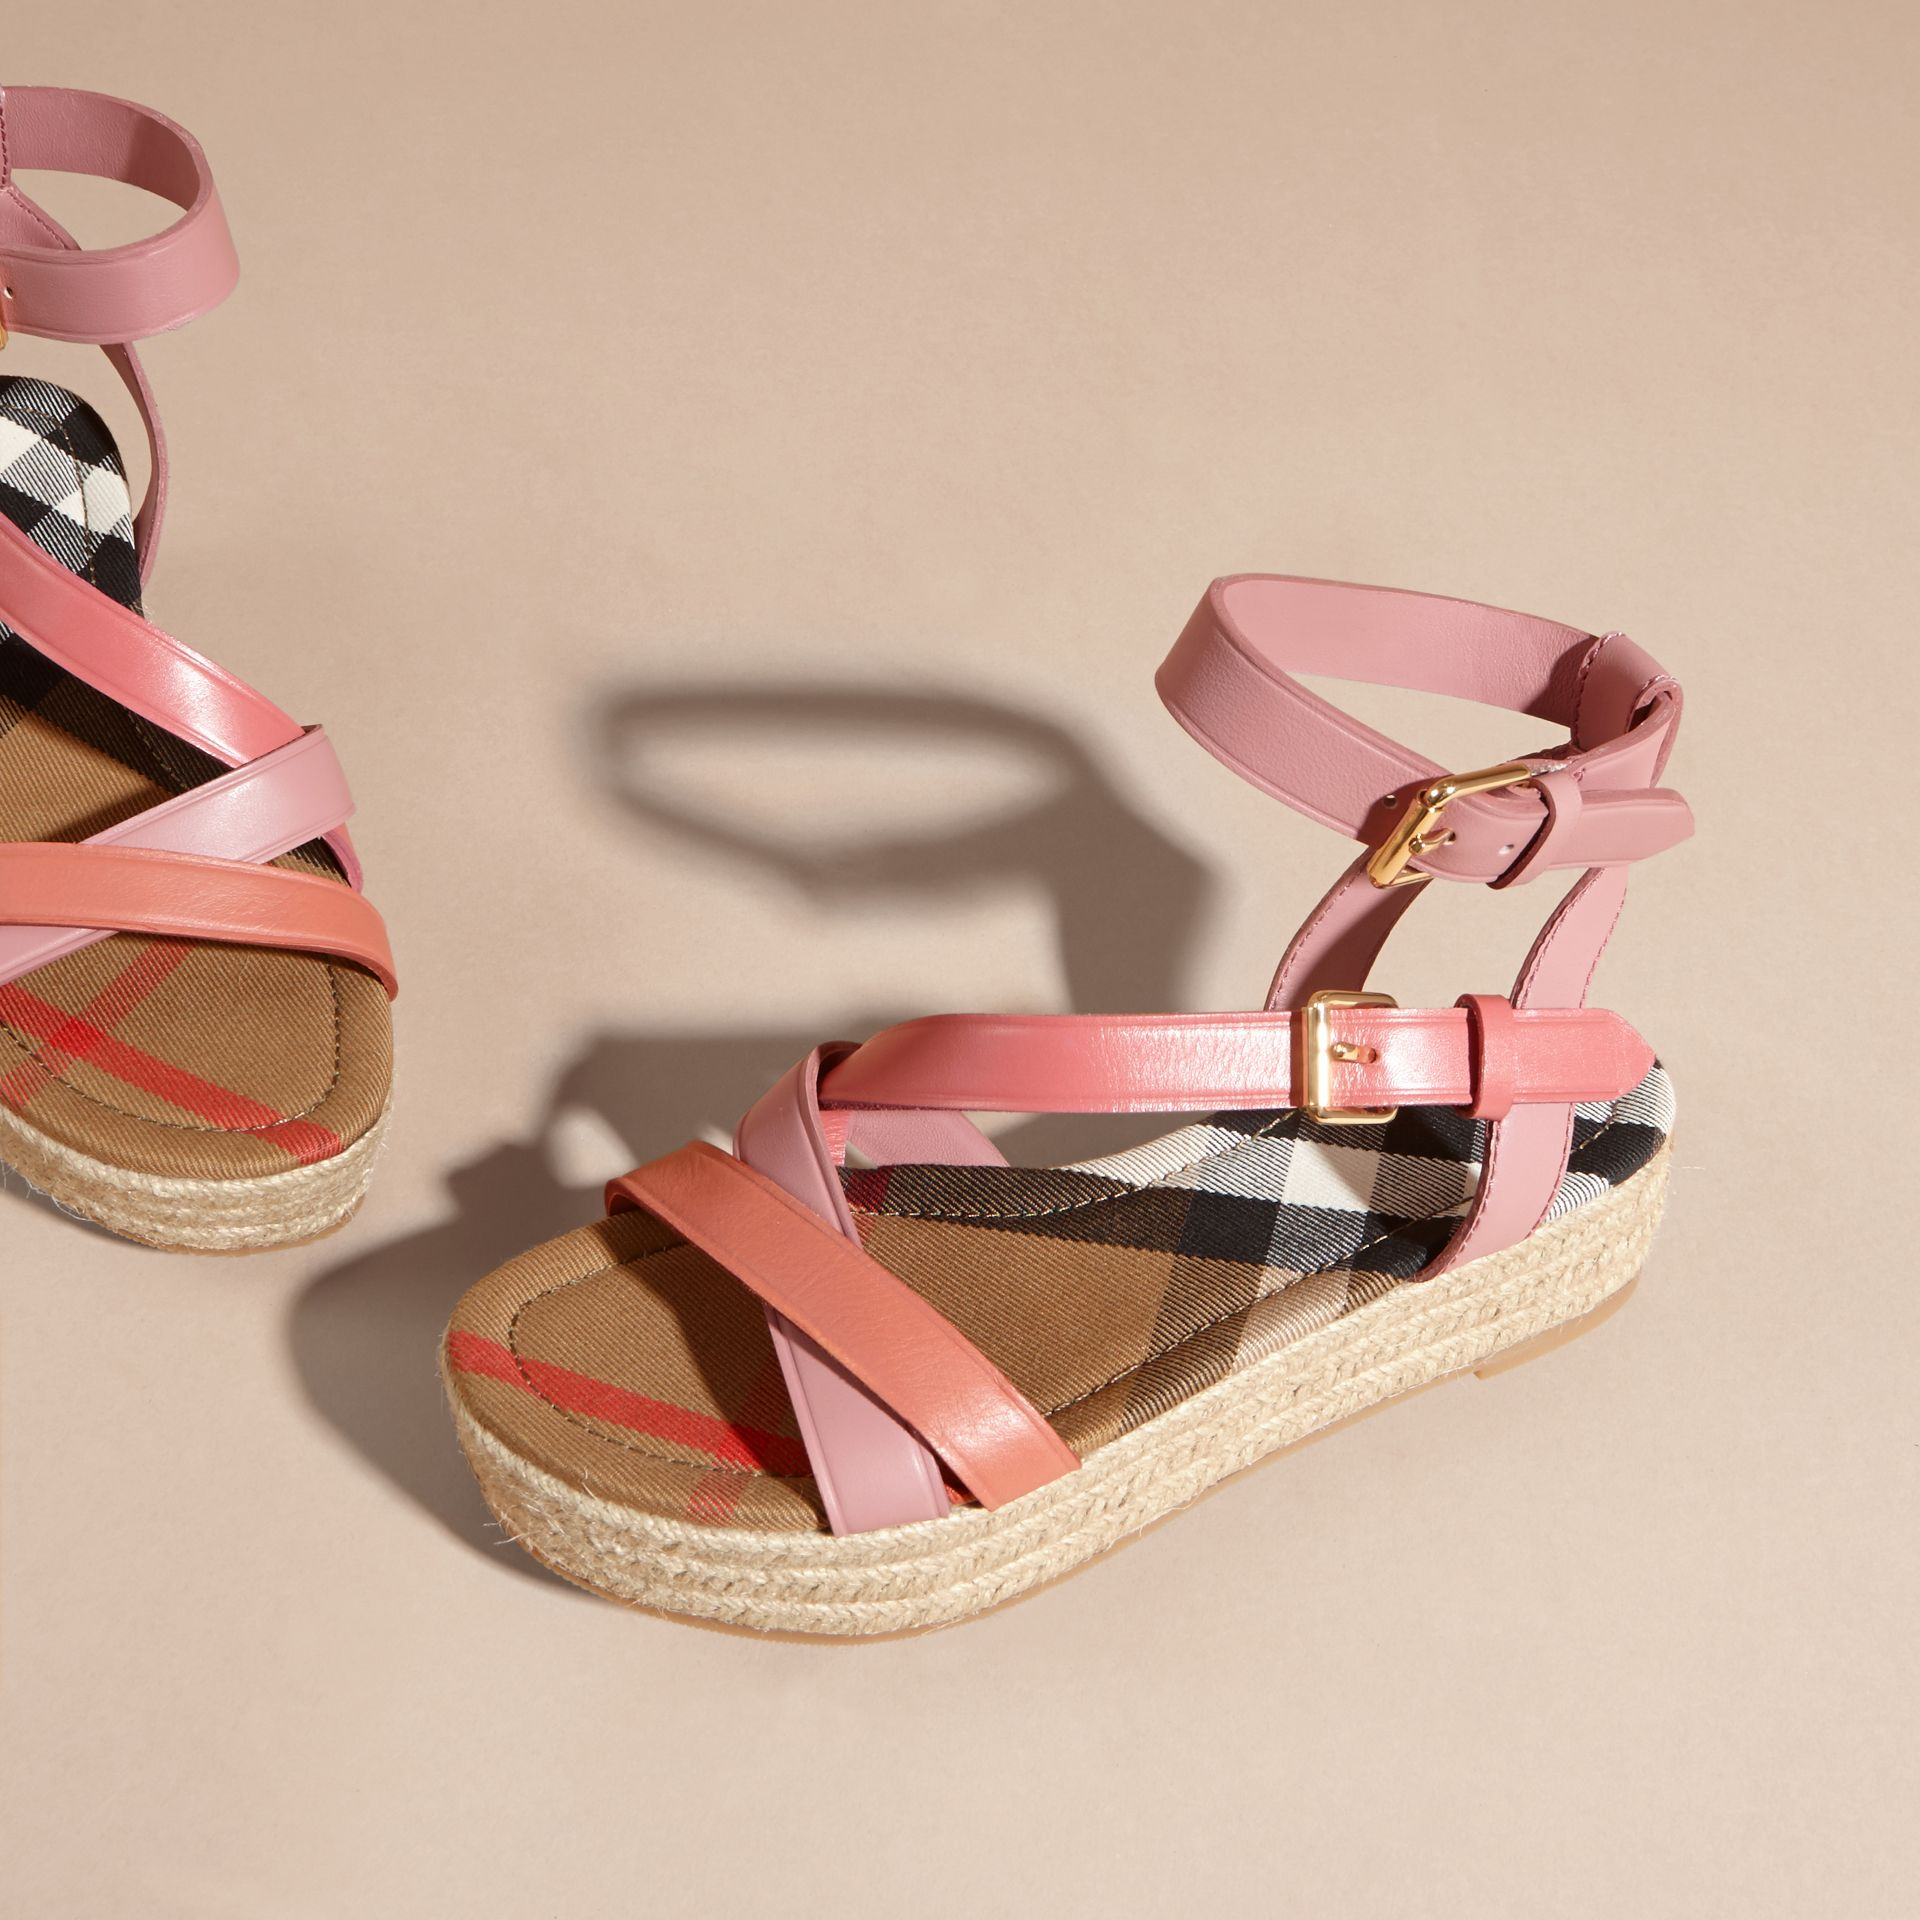 Two-tone Leather Espadrille Sandals in Dusty Pink - Women | Burberry Australia - gallery image 4